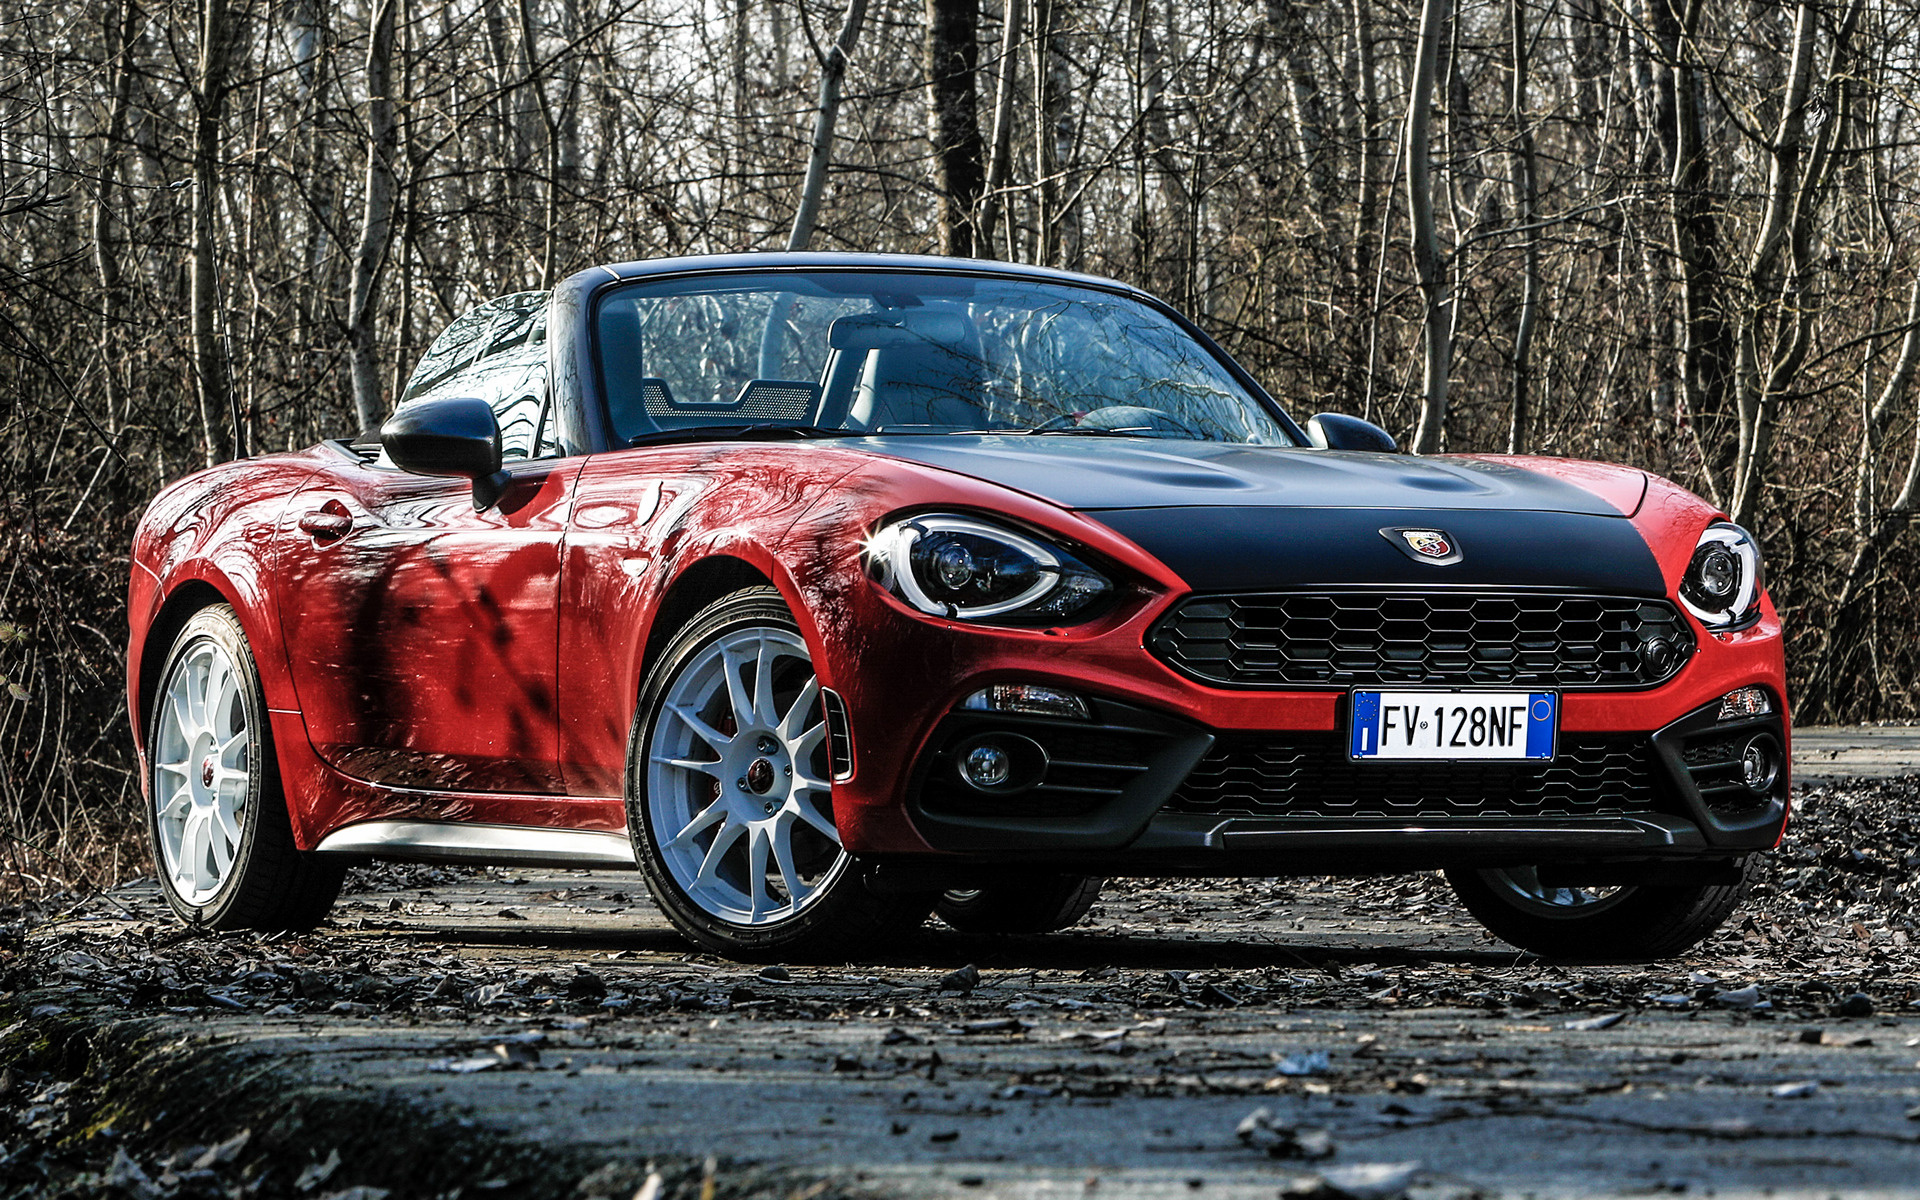 Subaru Rally Car >> 2019 Abarth 124 Spider Rally Tribute - Wallpapers and HD Images | Car Pixel